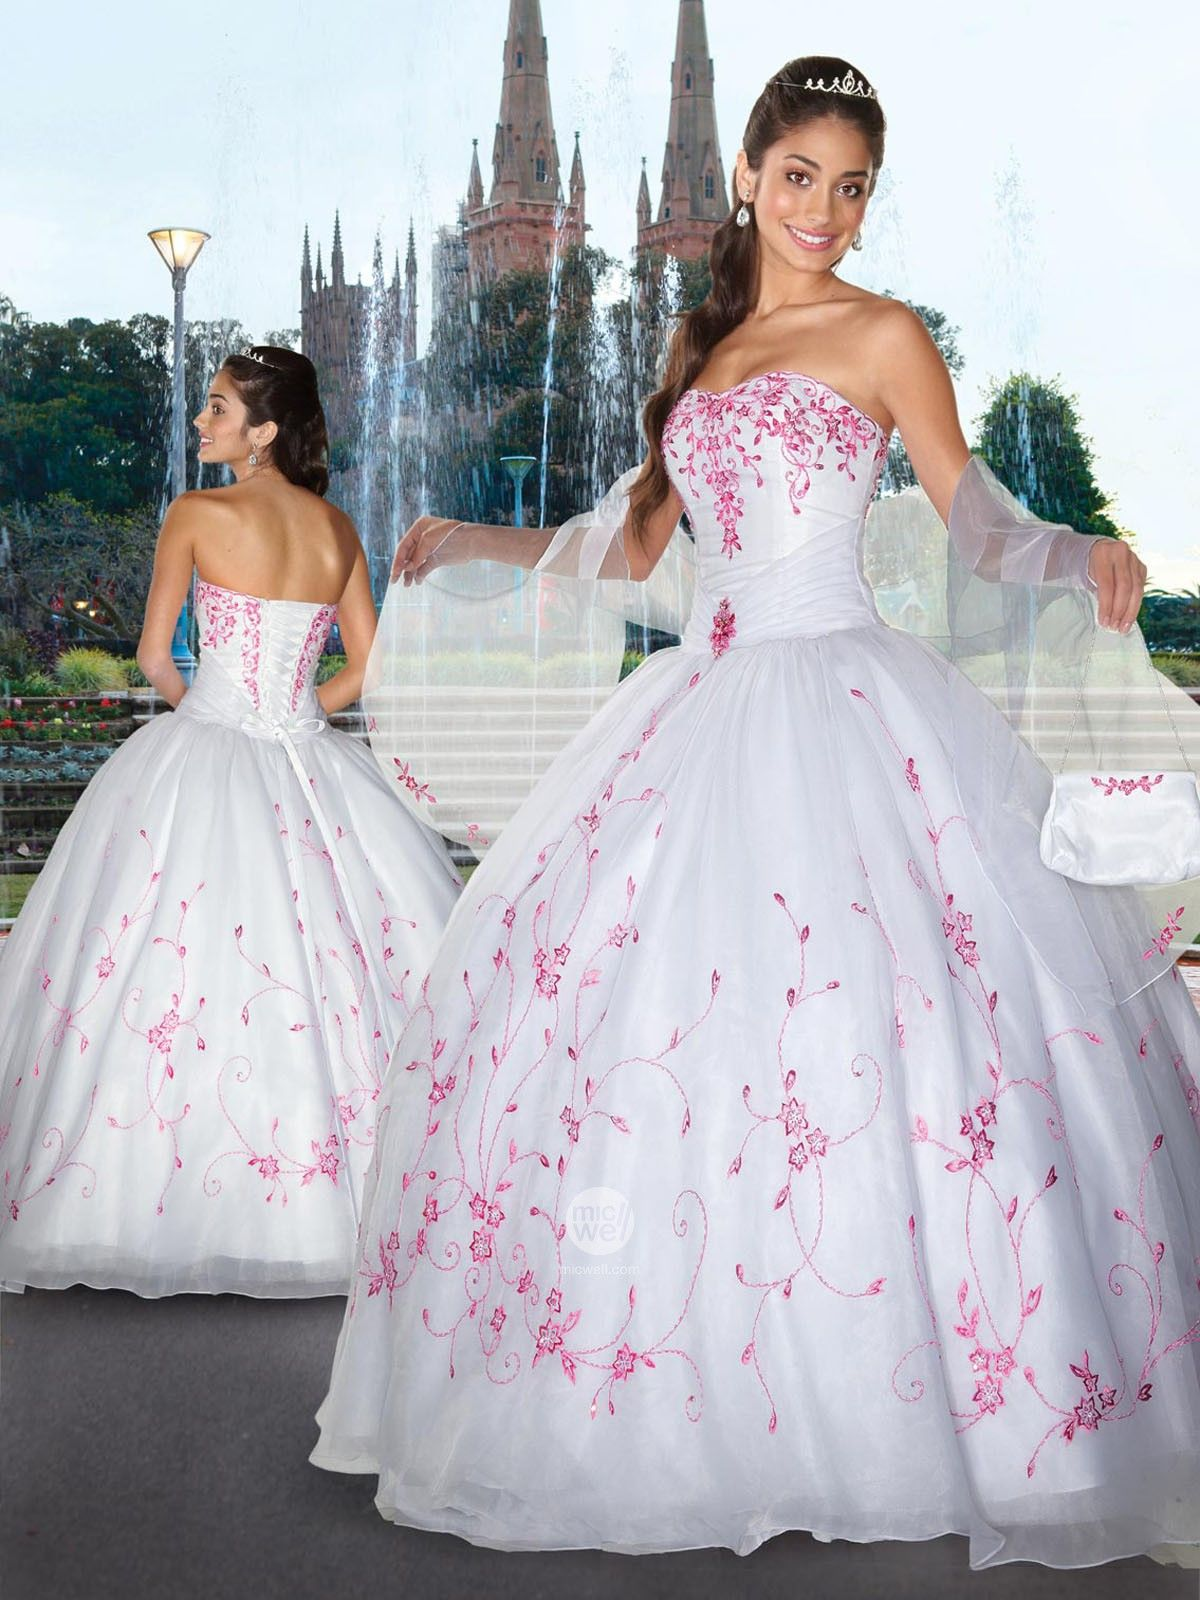 Different color wedding dresses  different color flowersI think  Beautiful dresses  Pinterest